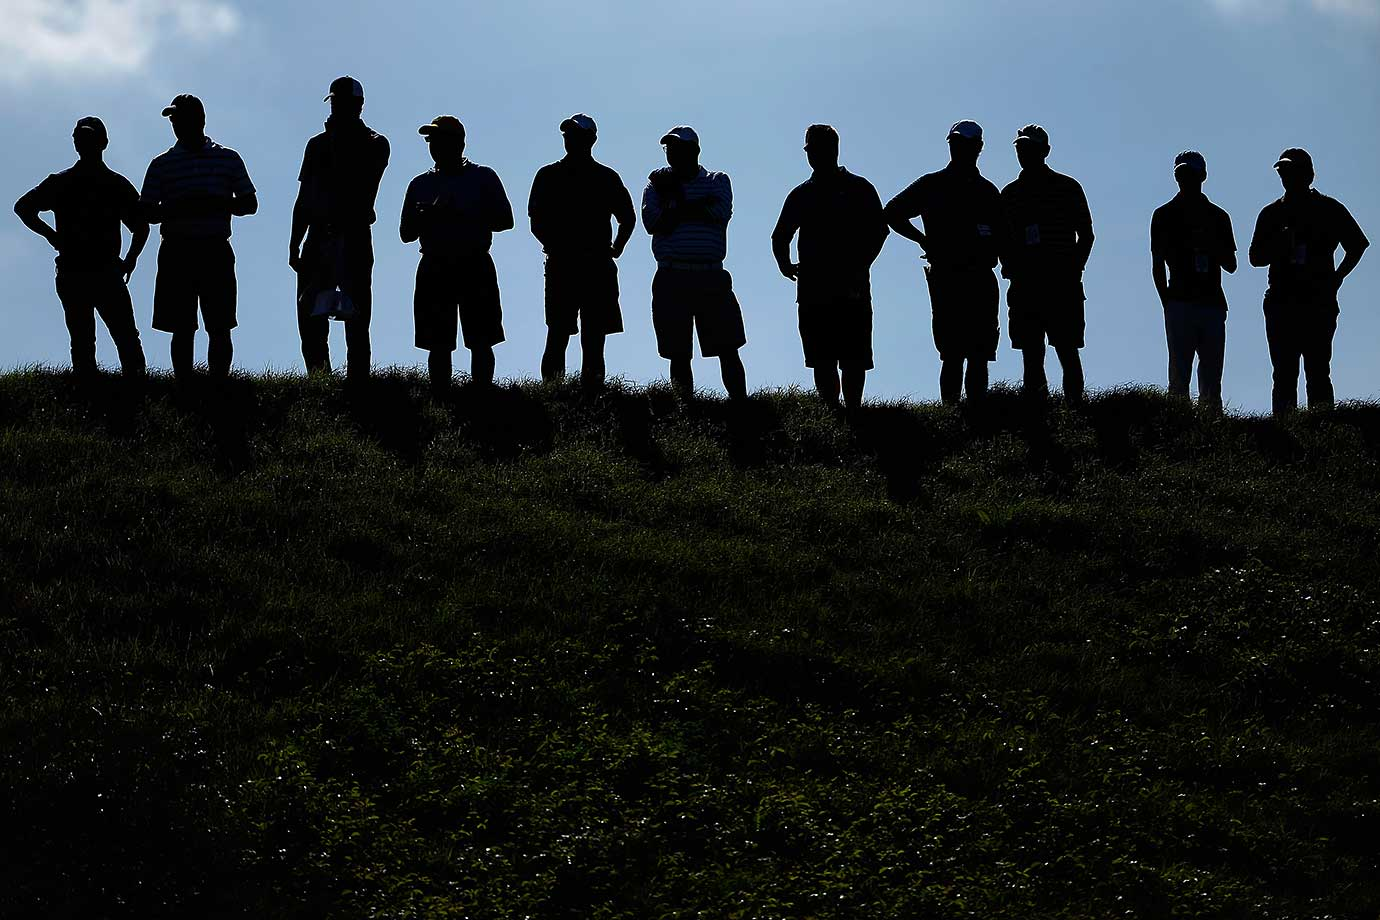 Fans watch the play above the 16th hole during the World Golf Championships-Dell Match Play in Austin, Texas.